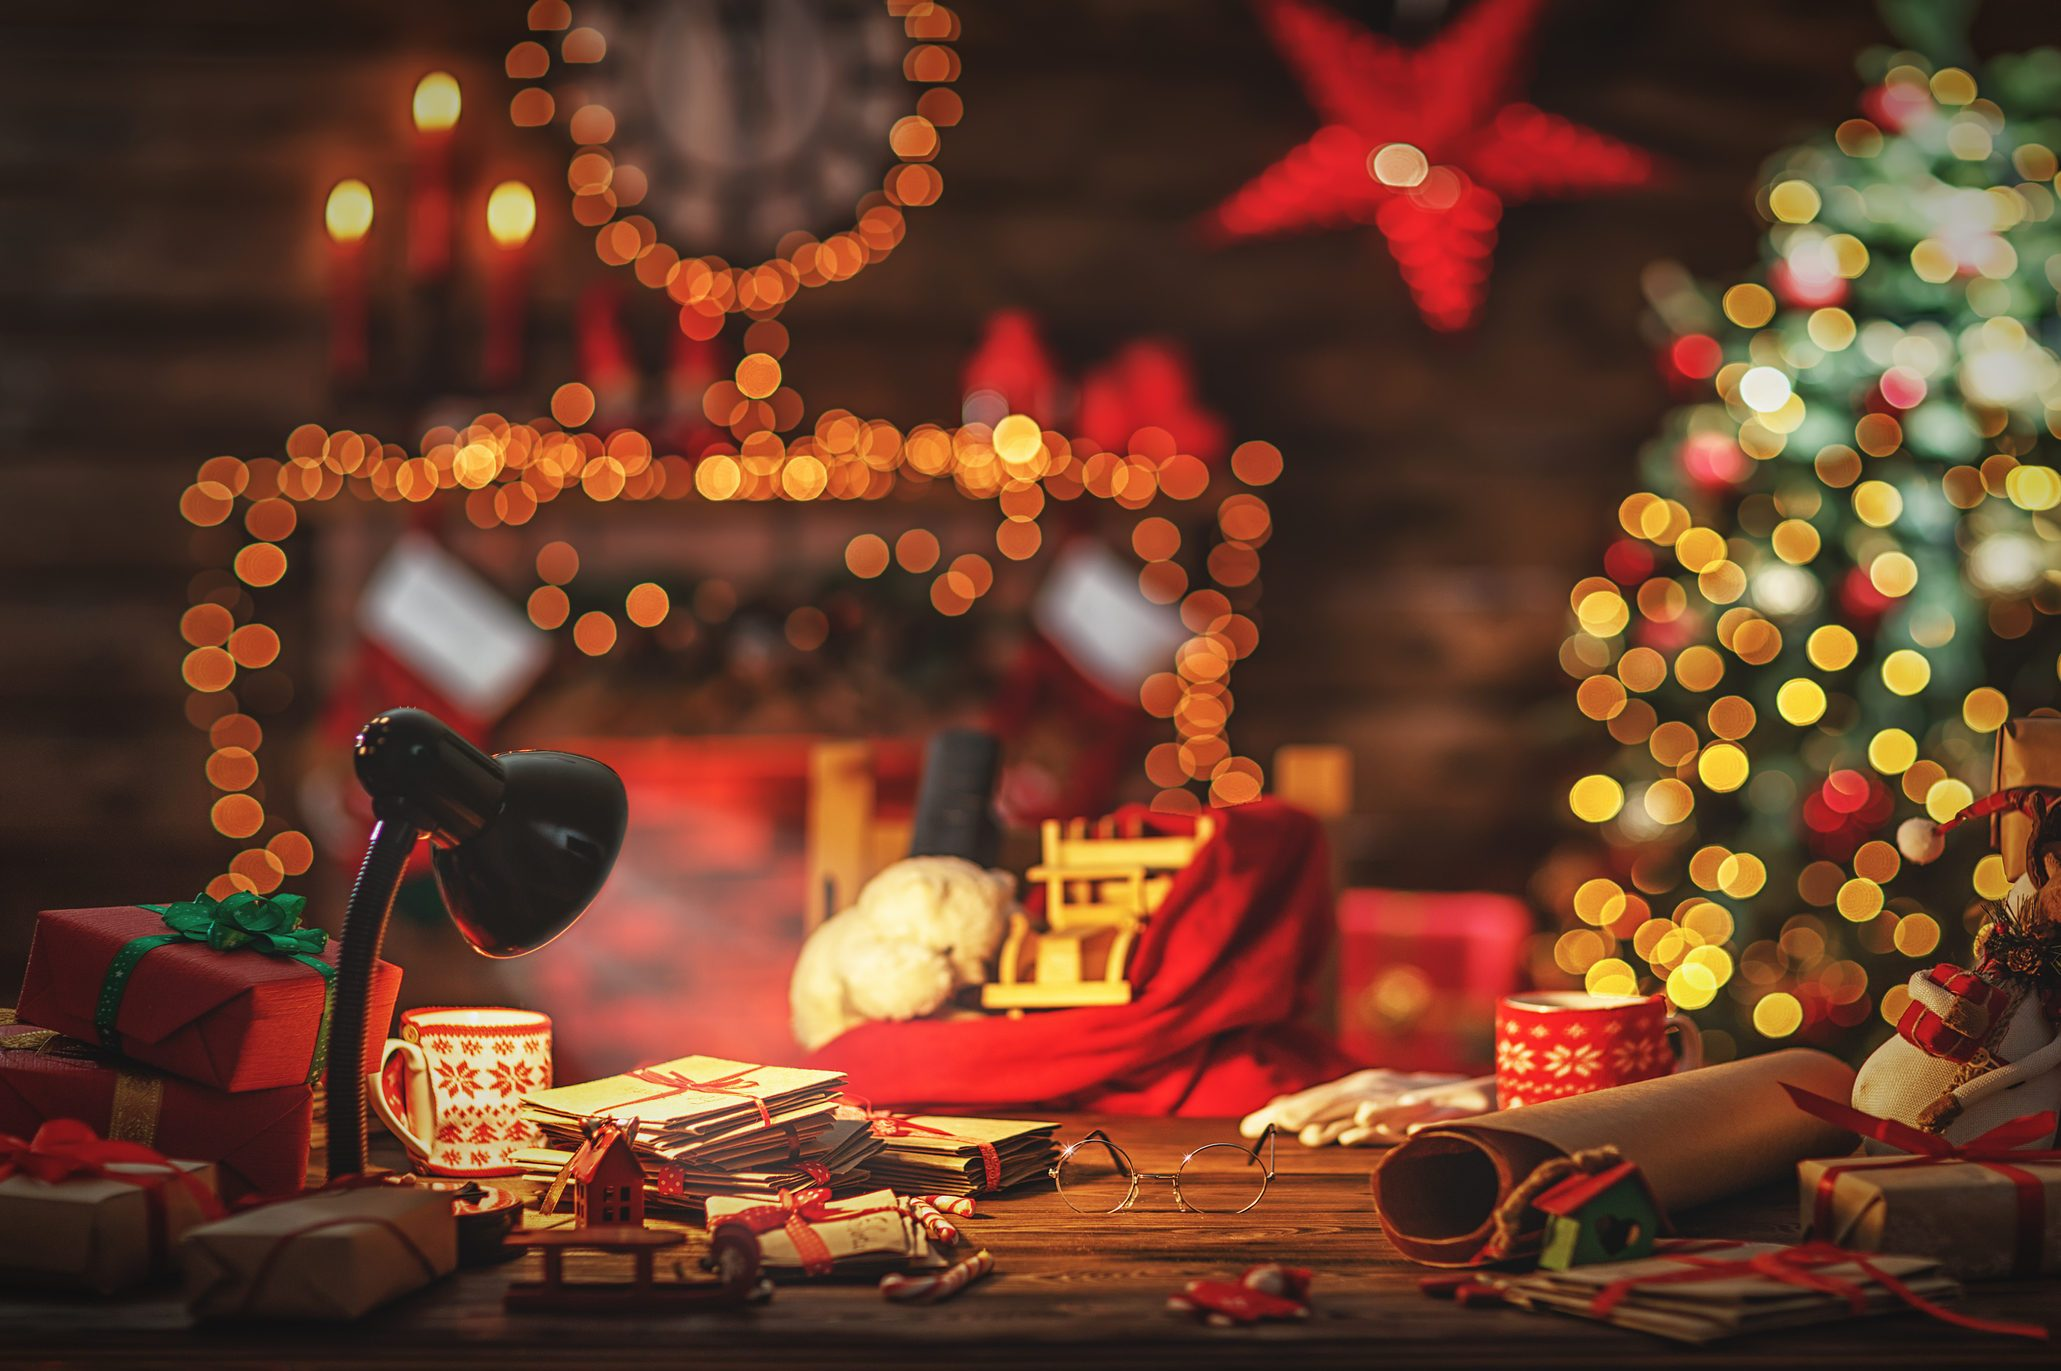 Desk of Santa Claus in Christmas